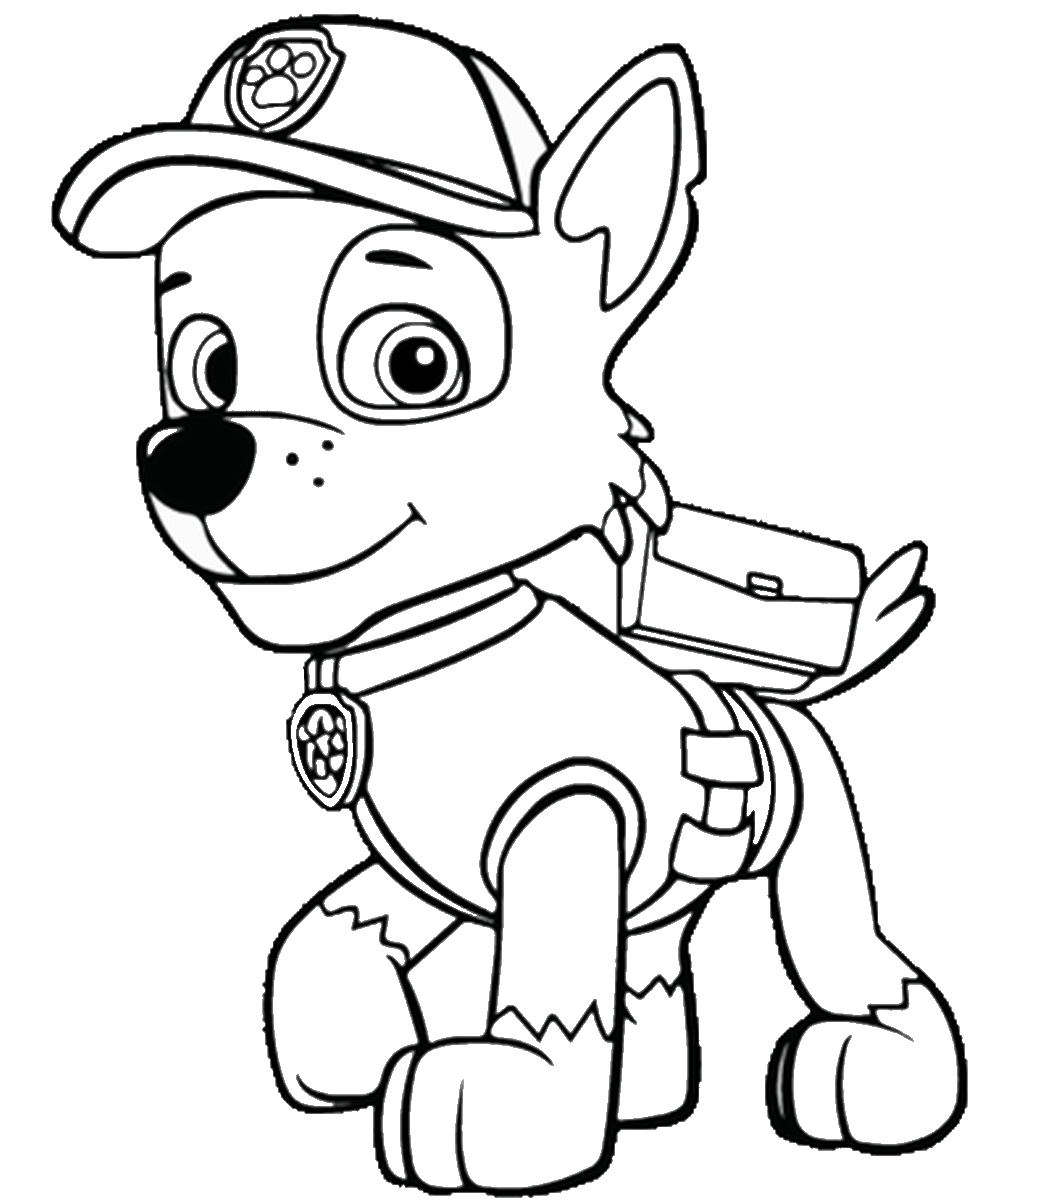 paw patrol coloring pages everest badge paw patrol badges coloring pages at getdrawings free everest coloring paw badge patrol pages